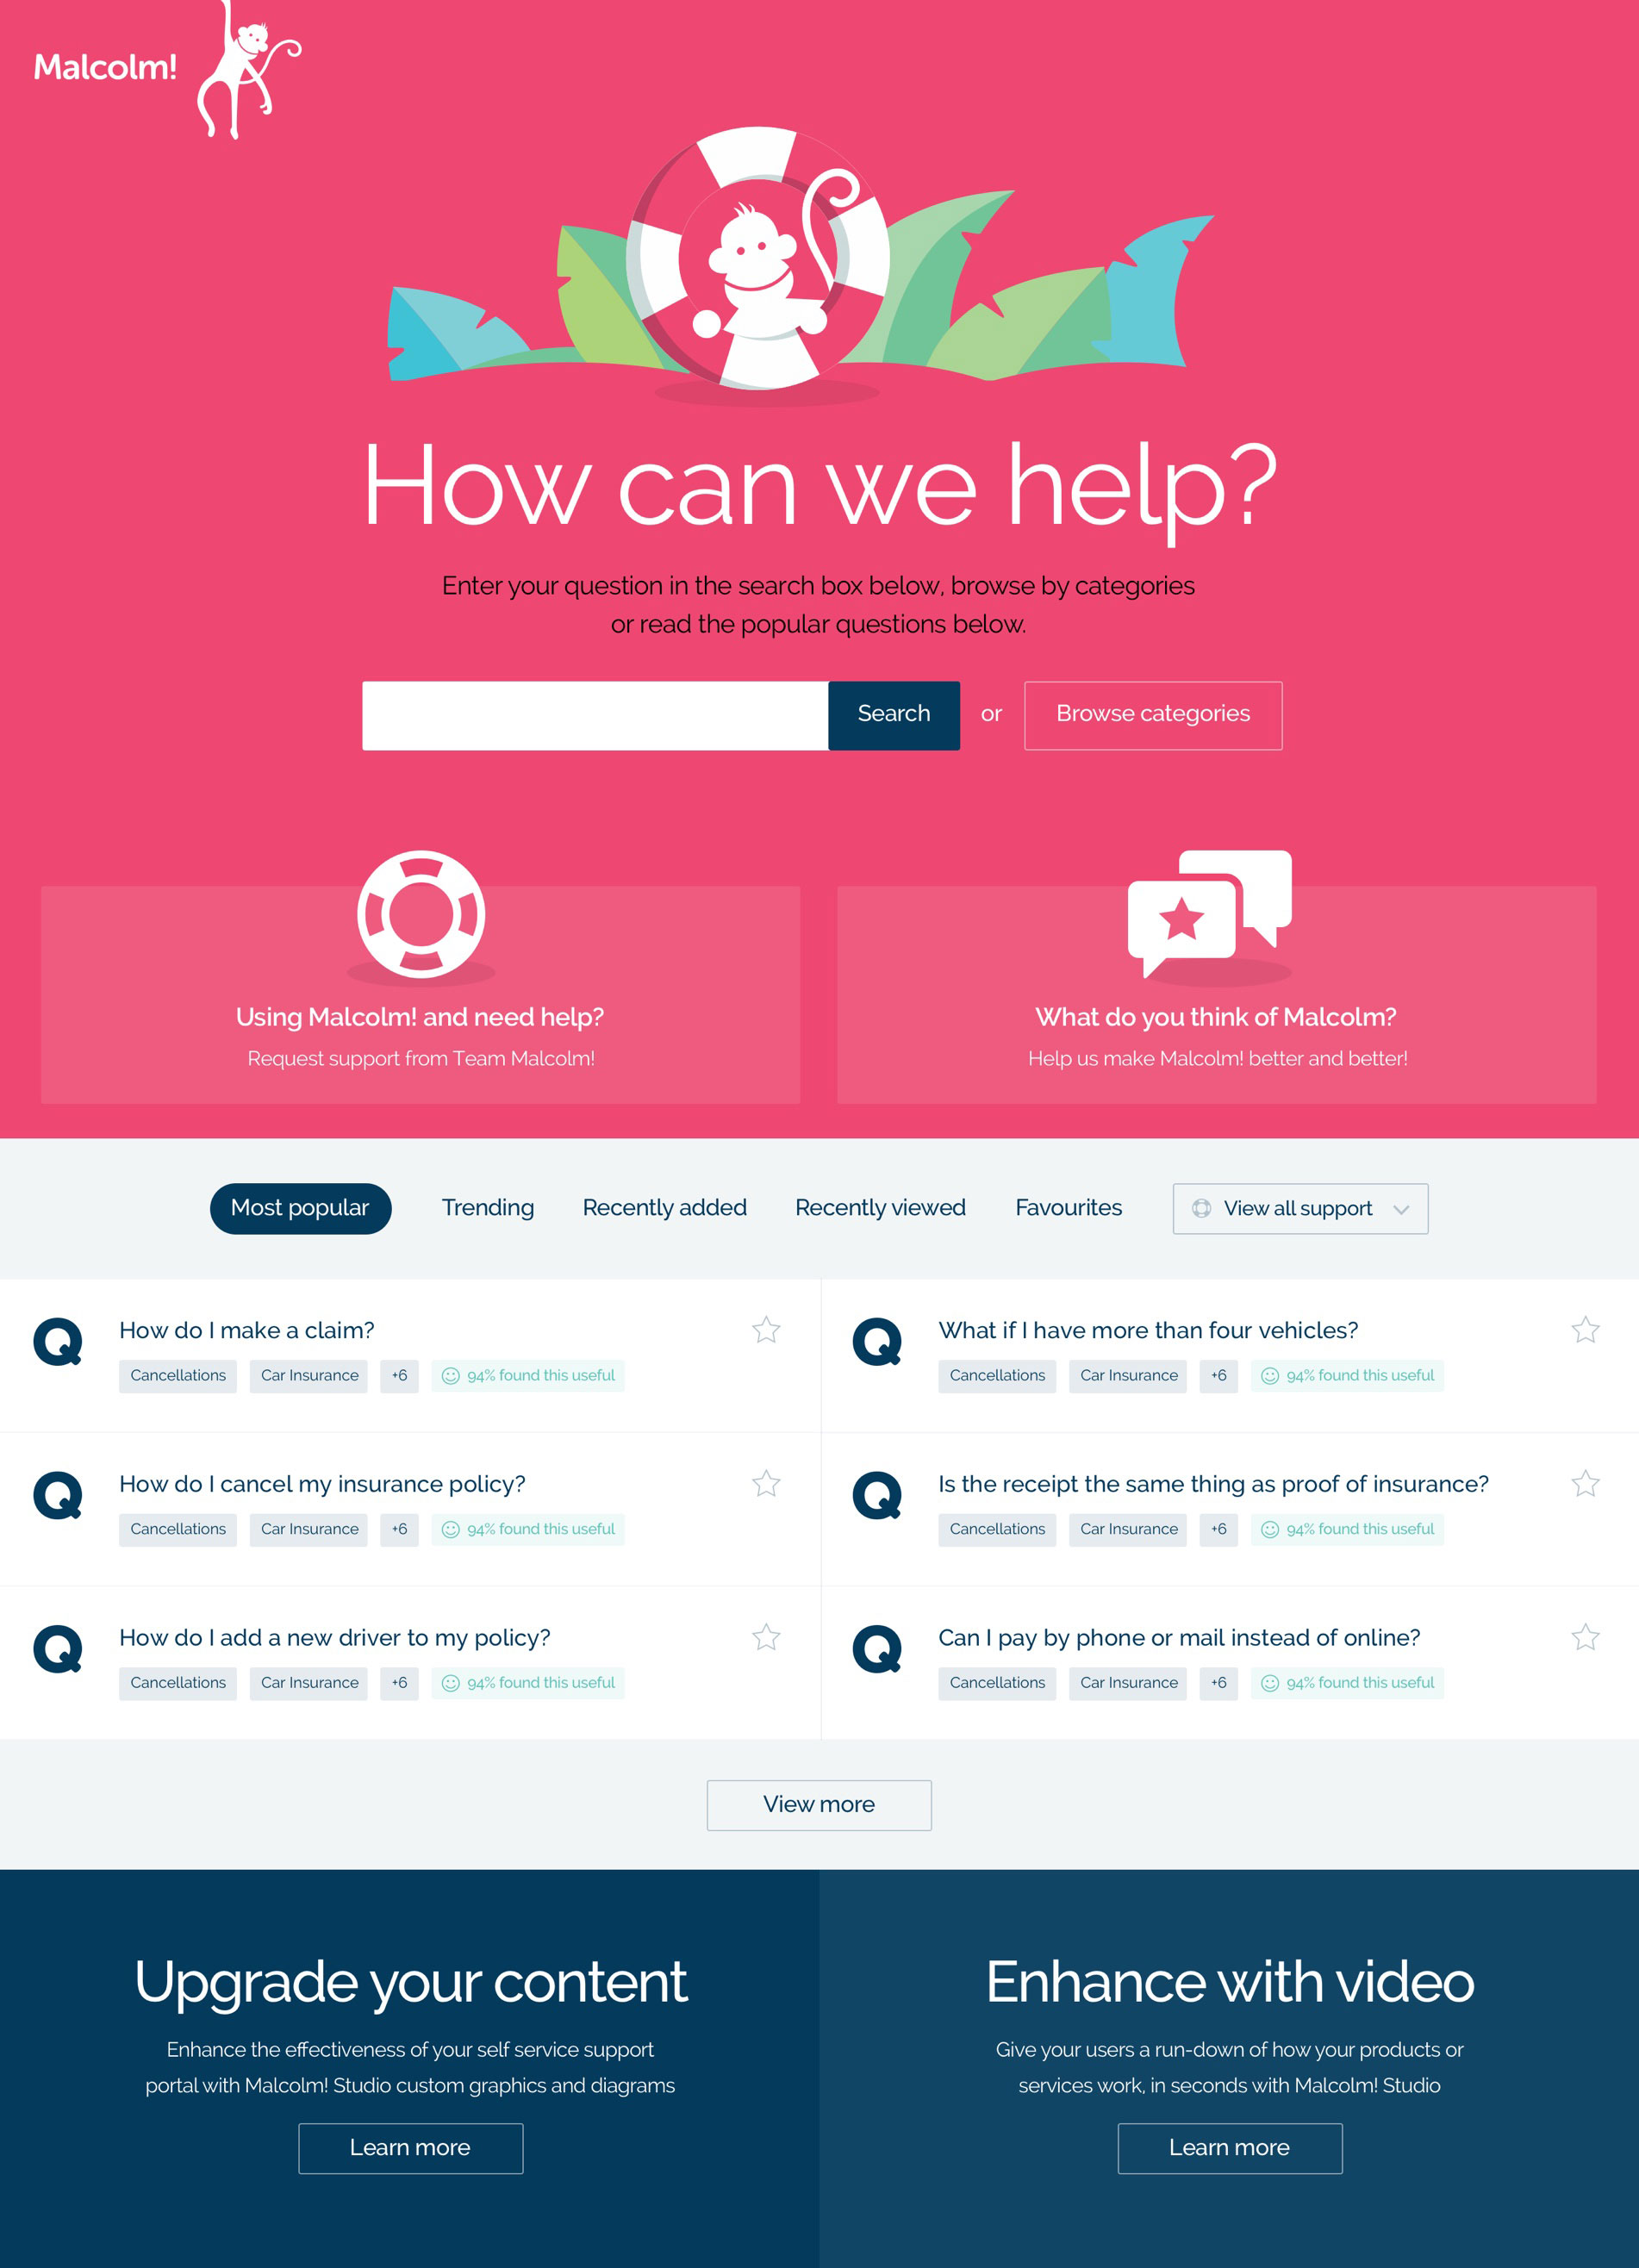 Malcolm! FAQs landing page